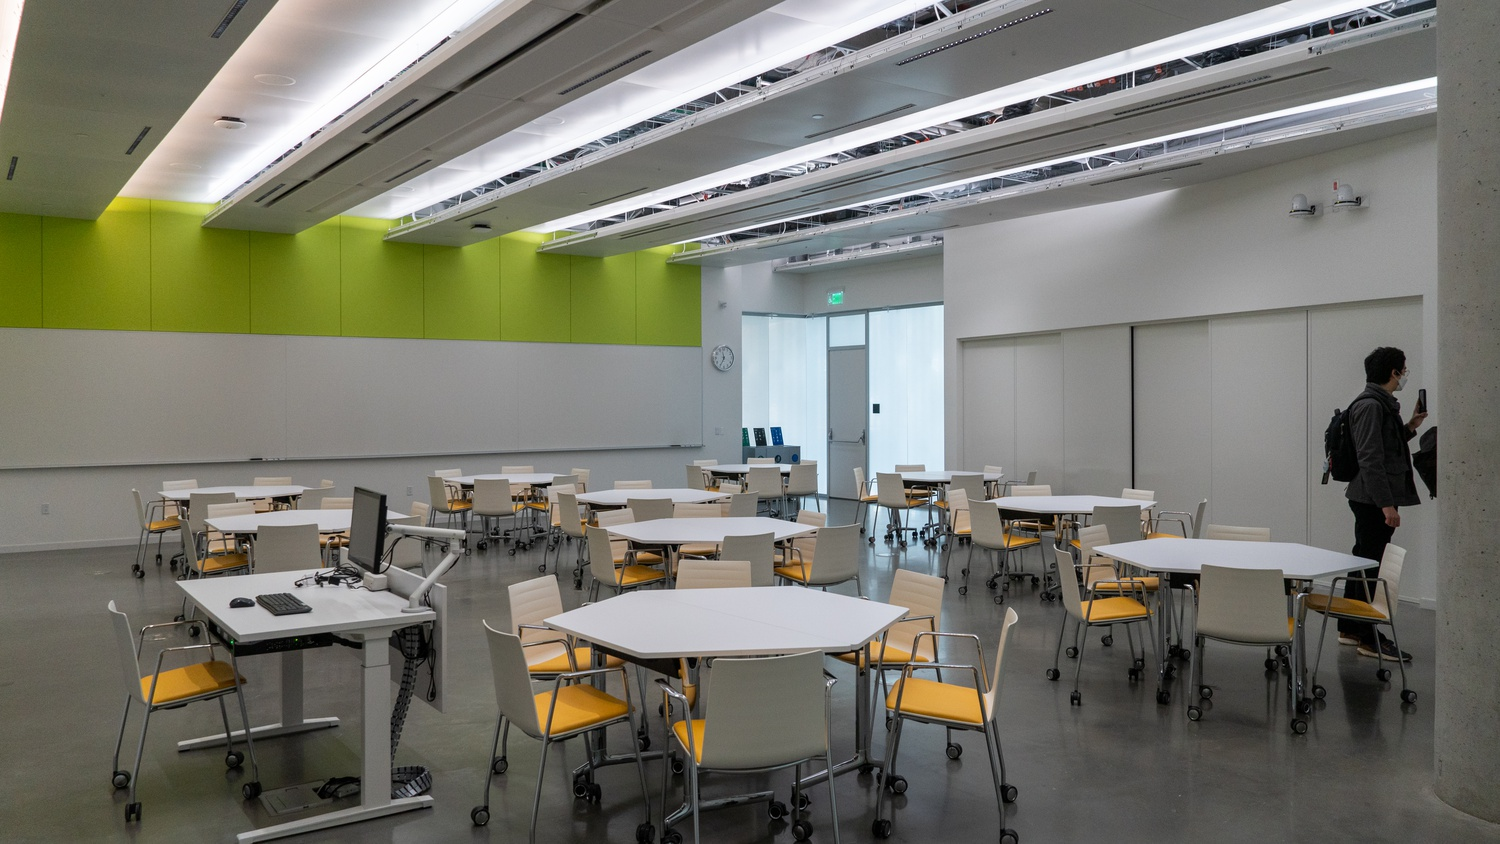 The seven 'flat, flexible' classrooms allow faculty to rearrange the room for their classes. Some feature privacy glass windows that can switch between clear and opaque, like those pictured in the background.